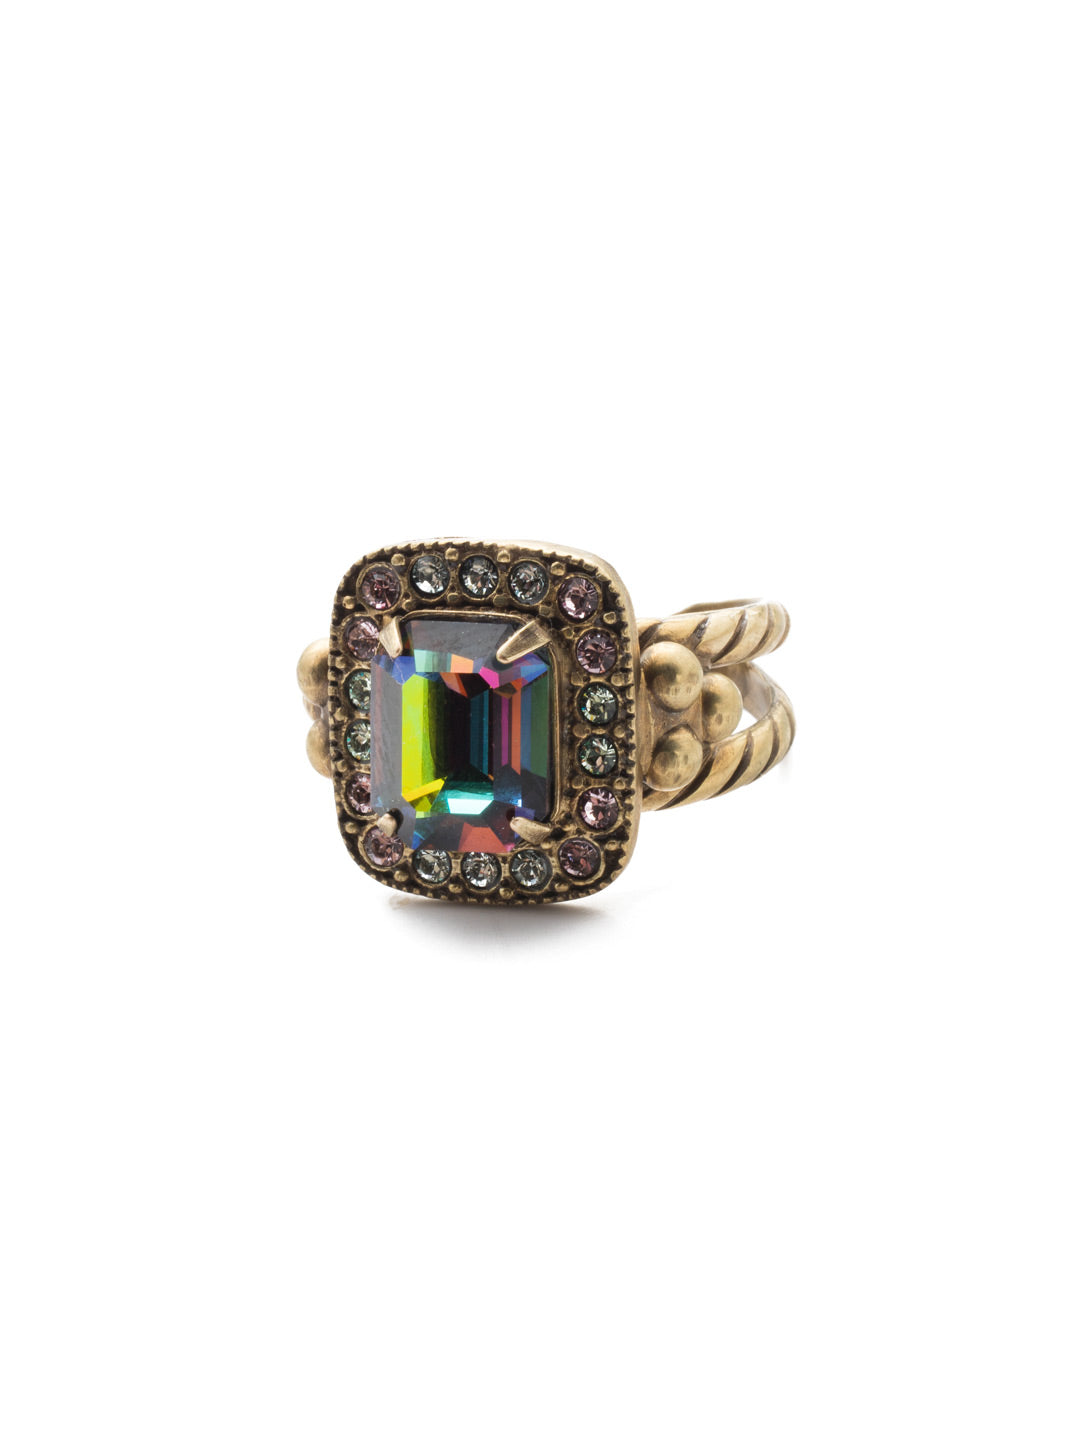 Opulent Octagon Cocktail Ring - RDQ41AGIRB